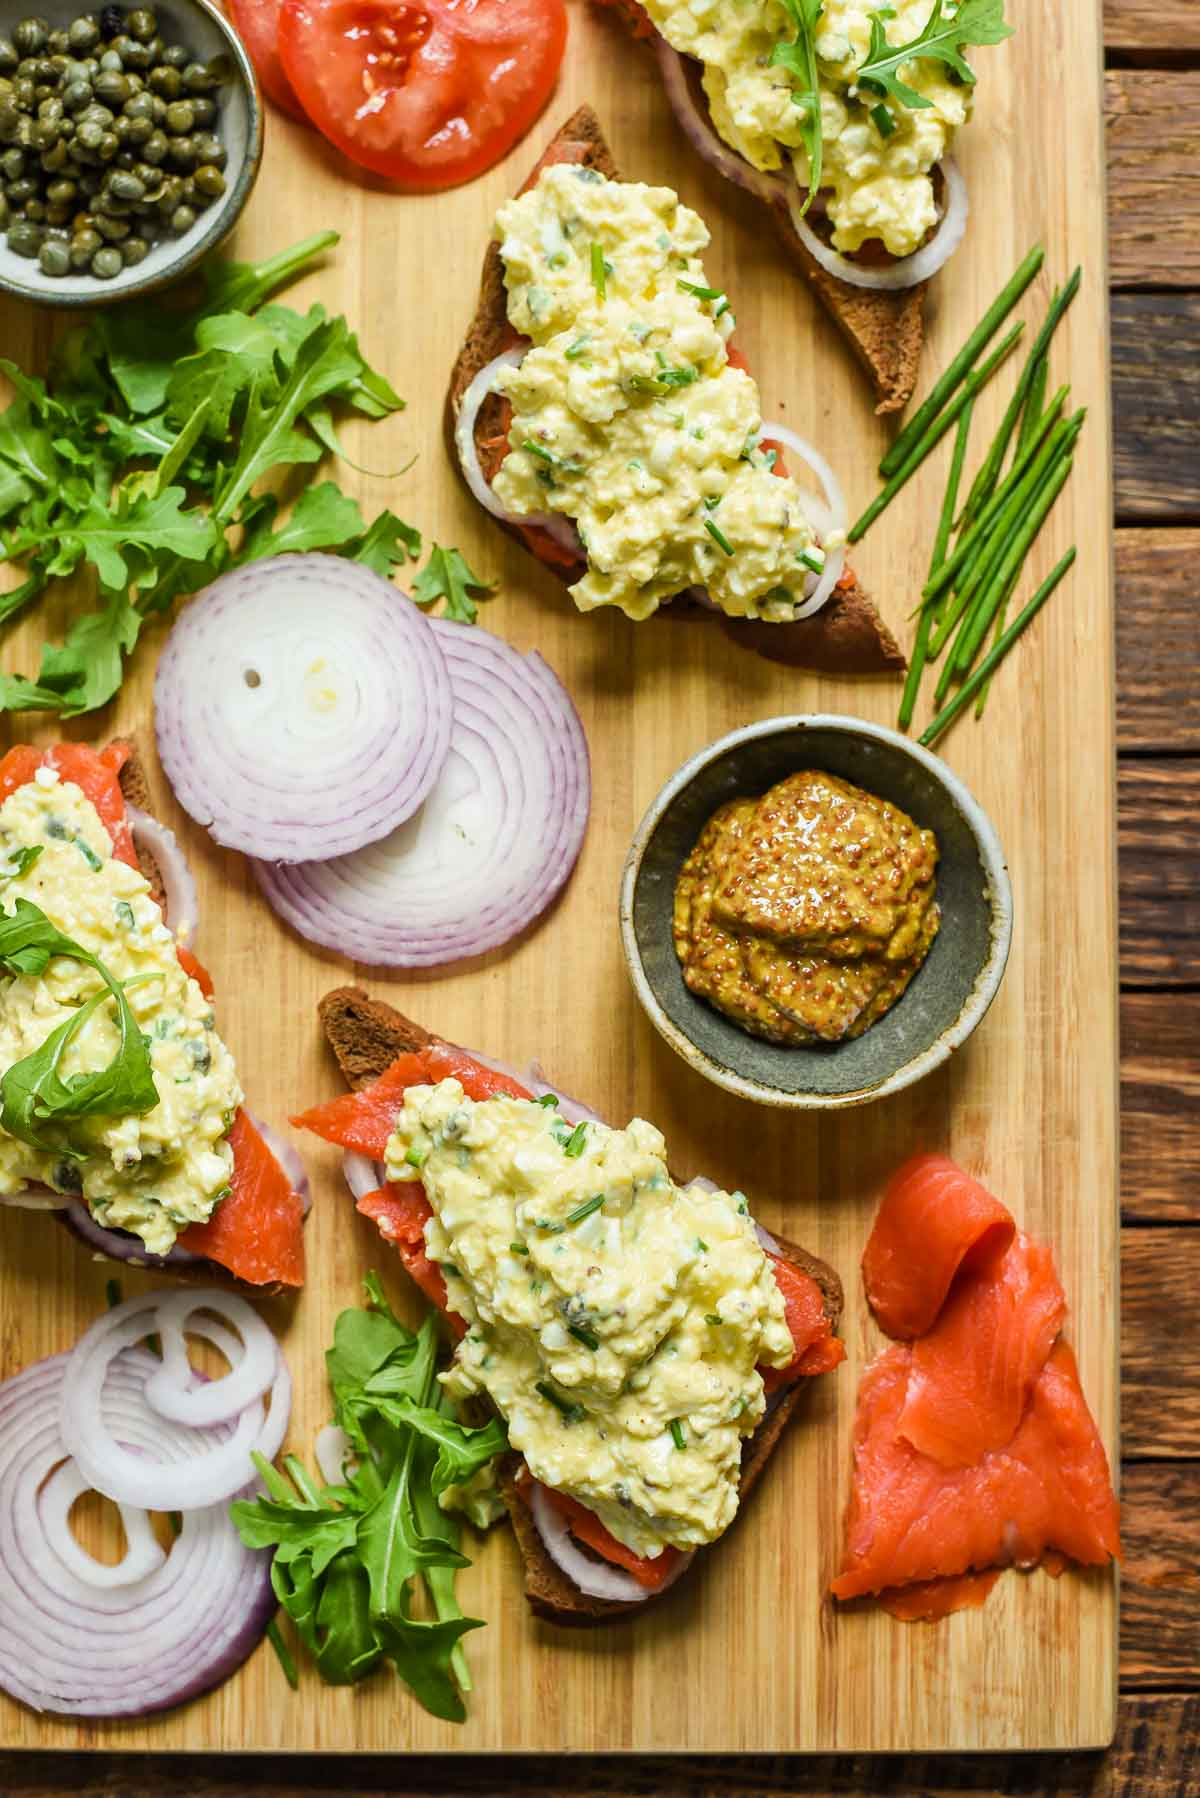 Smoked Salmon Egg Salad Sandwiches take traditional egg salad up a notch! Topped with capers and red onions, this recipe is great for spring brunches or showers!